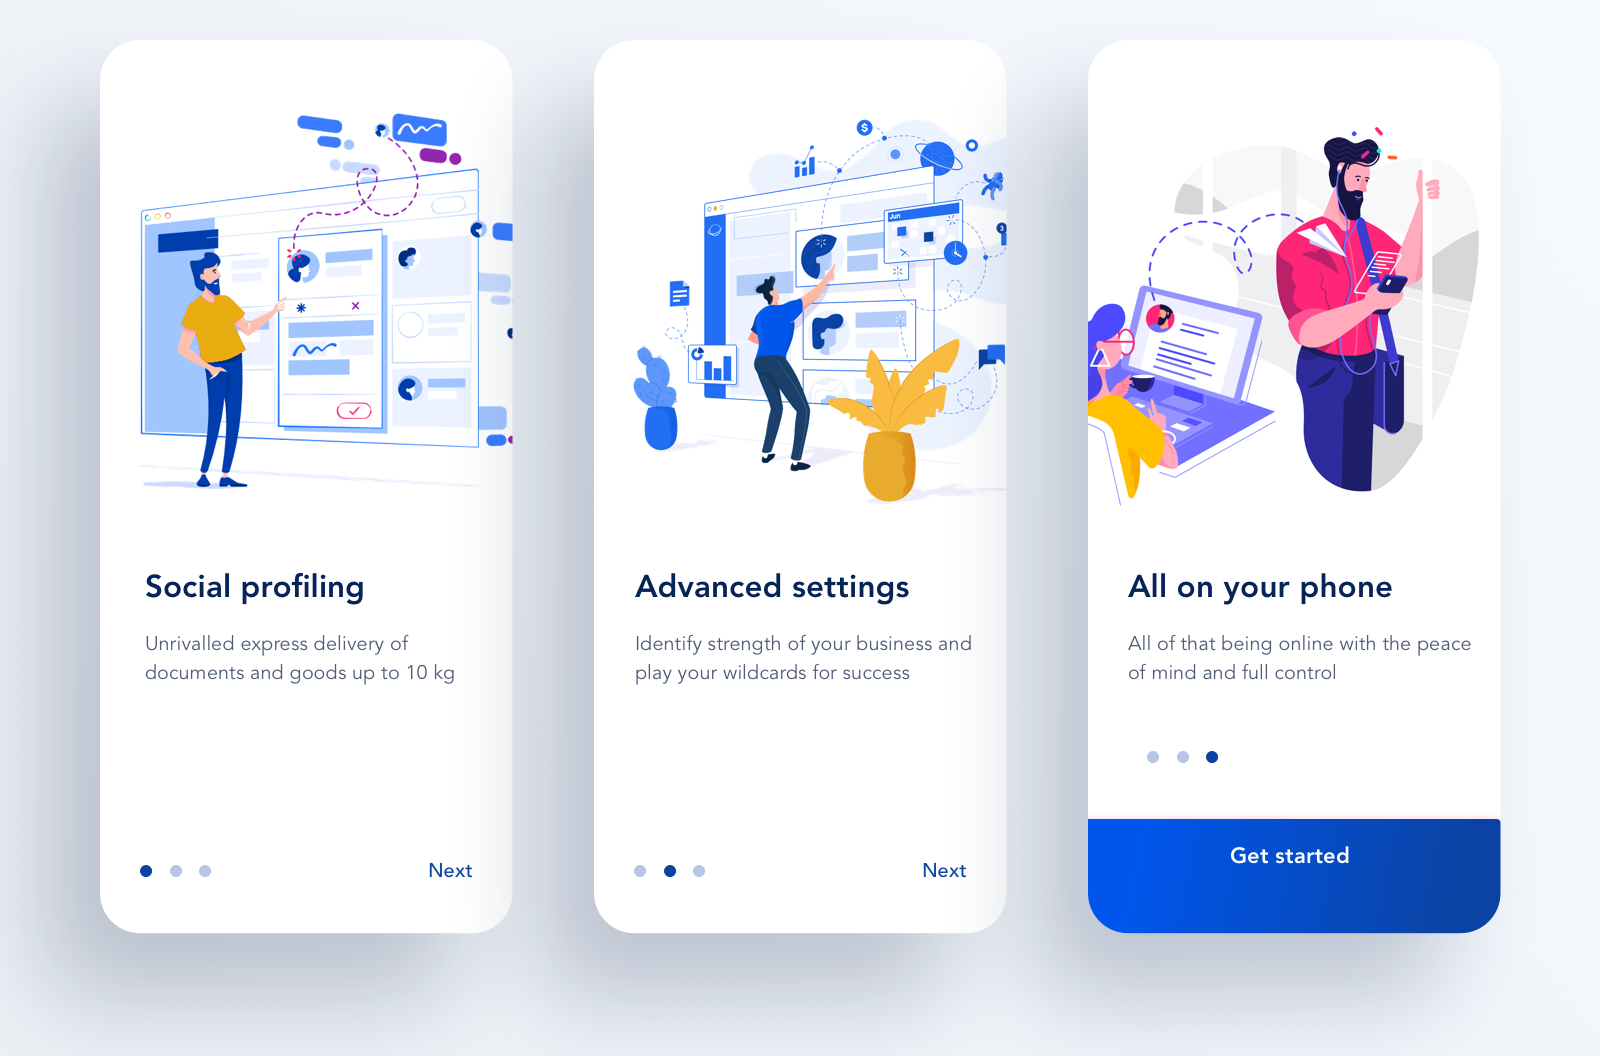 Cool illustrations used for mobile onboarding are part of the latest UX design trends